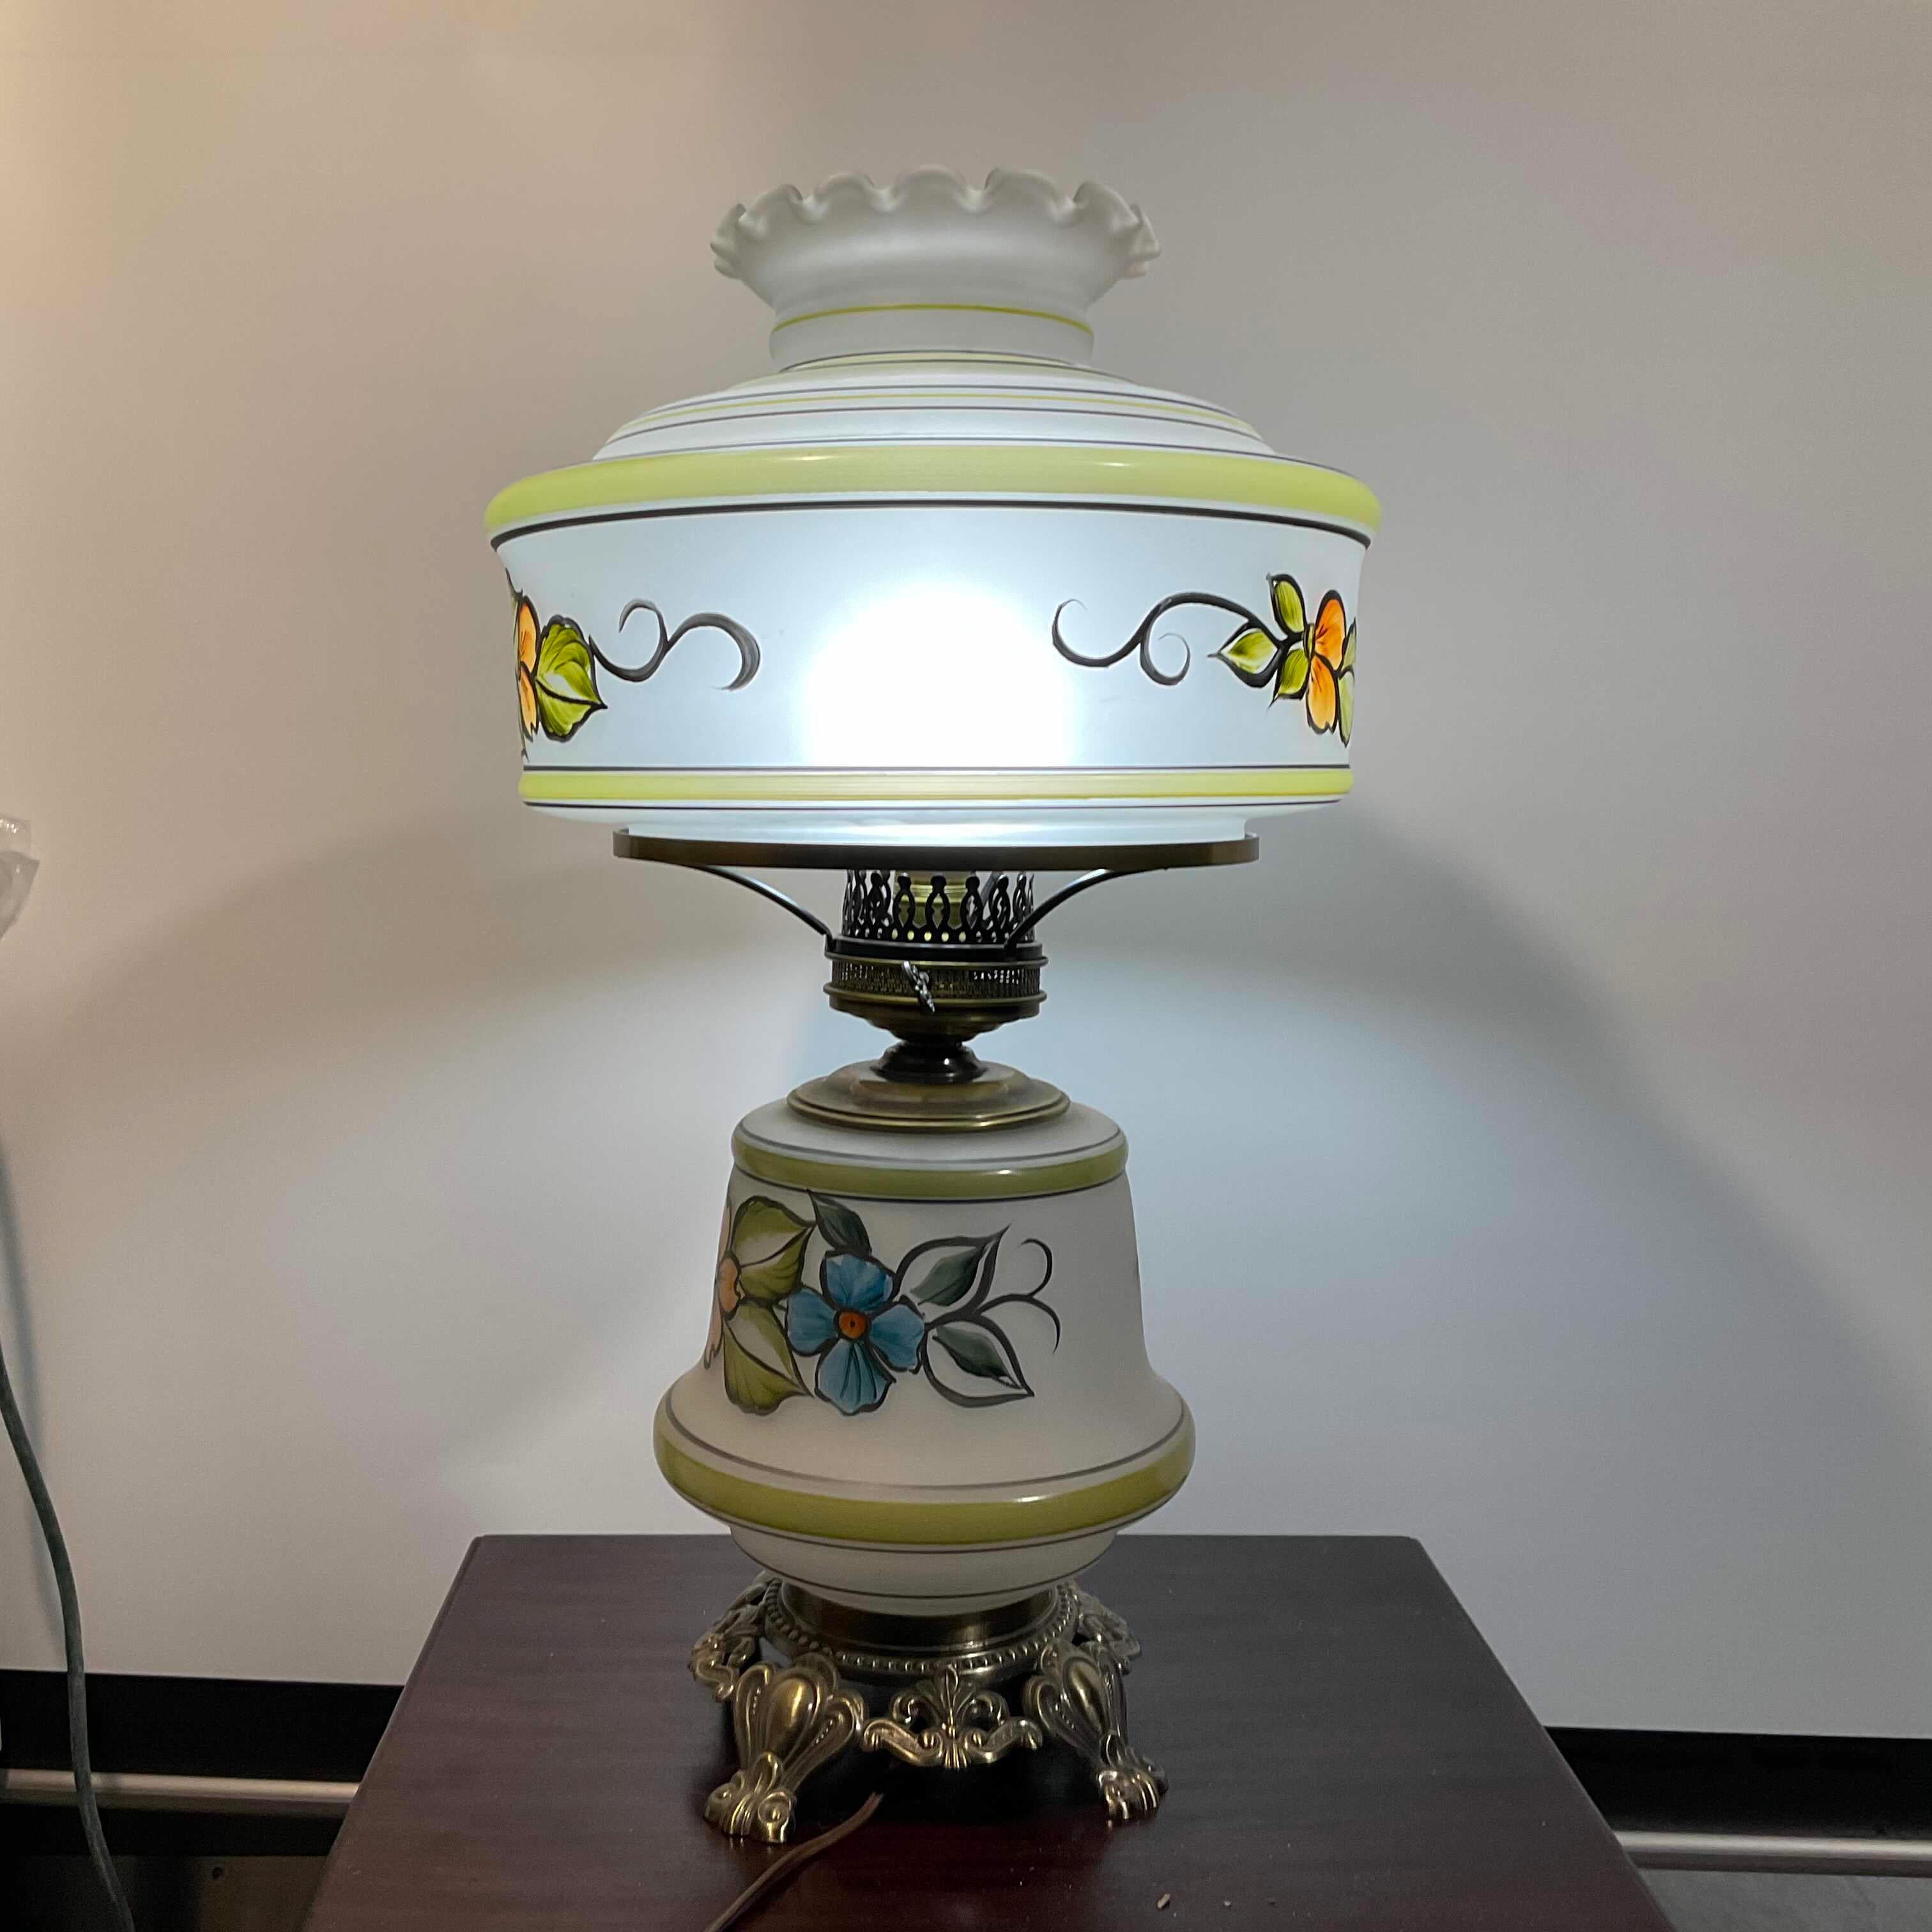 "16""x 24"" Vintage Glass with Painted Flower Abigail Adams Table Lamp"